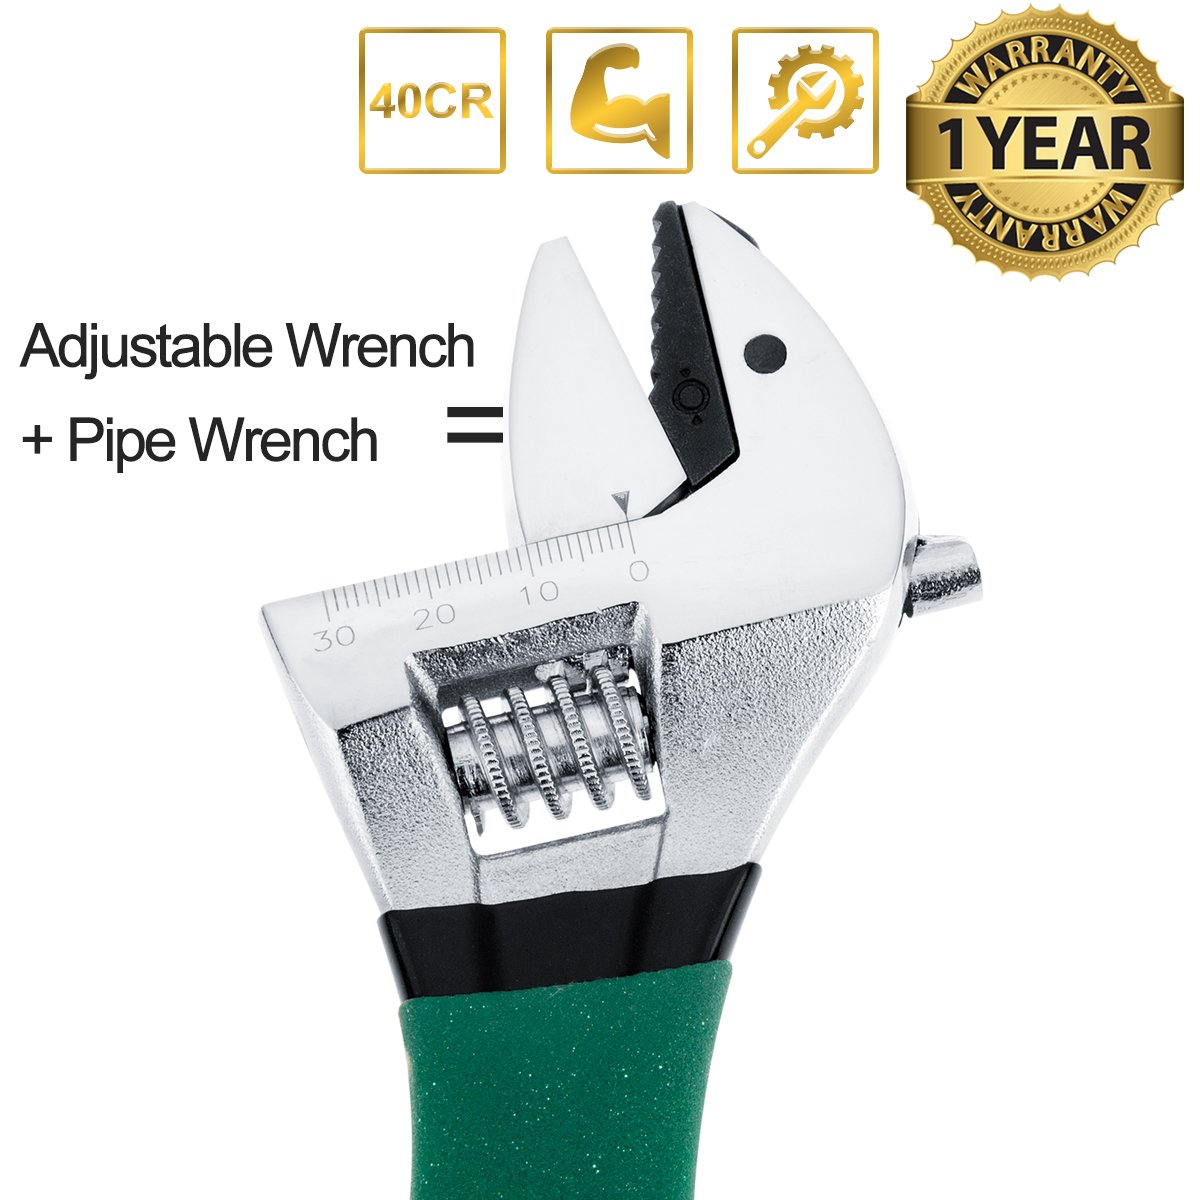 Adjustable Wrench, Pipe Wrench Multi-function Adjustable Sawtooth Wrench Ratchet Function with Anti-Slip Dark Green Grips Tools for Men Husband Dad Father Handyman Women-10 inch (10inch)